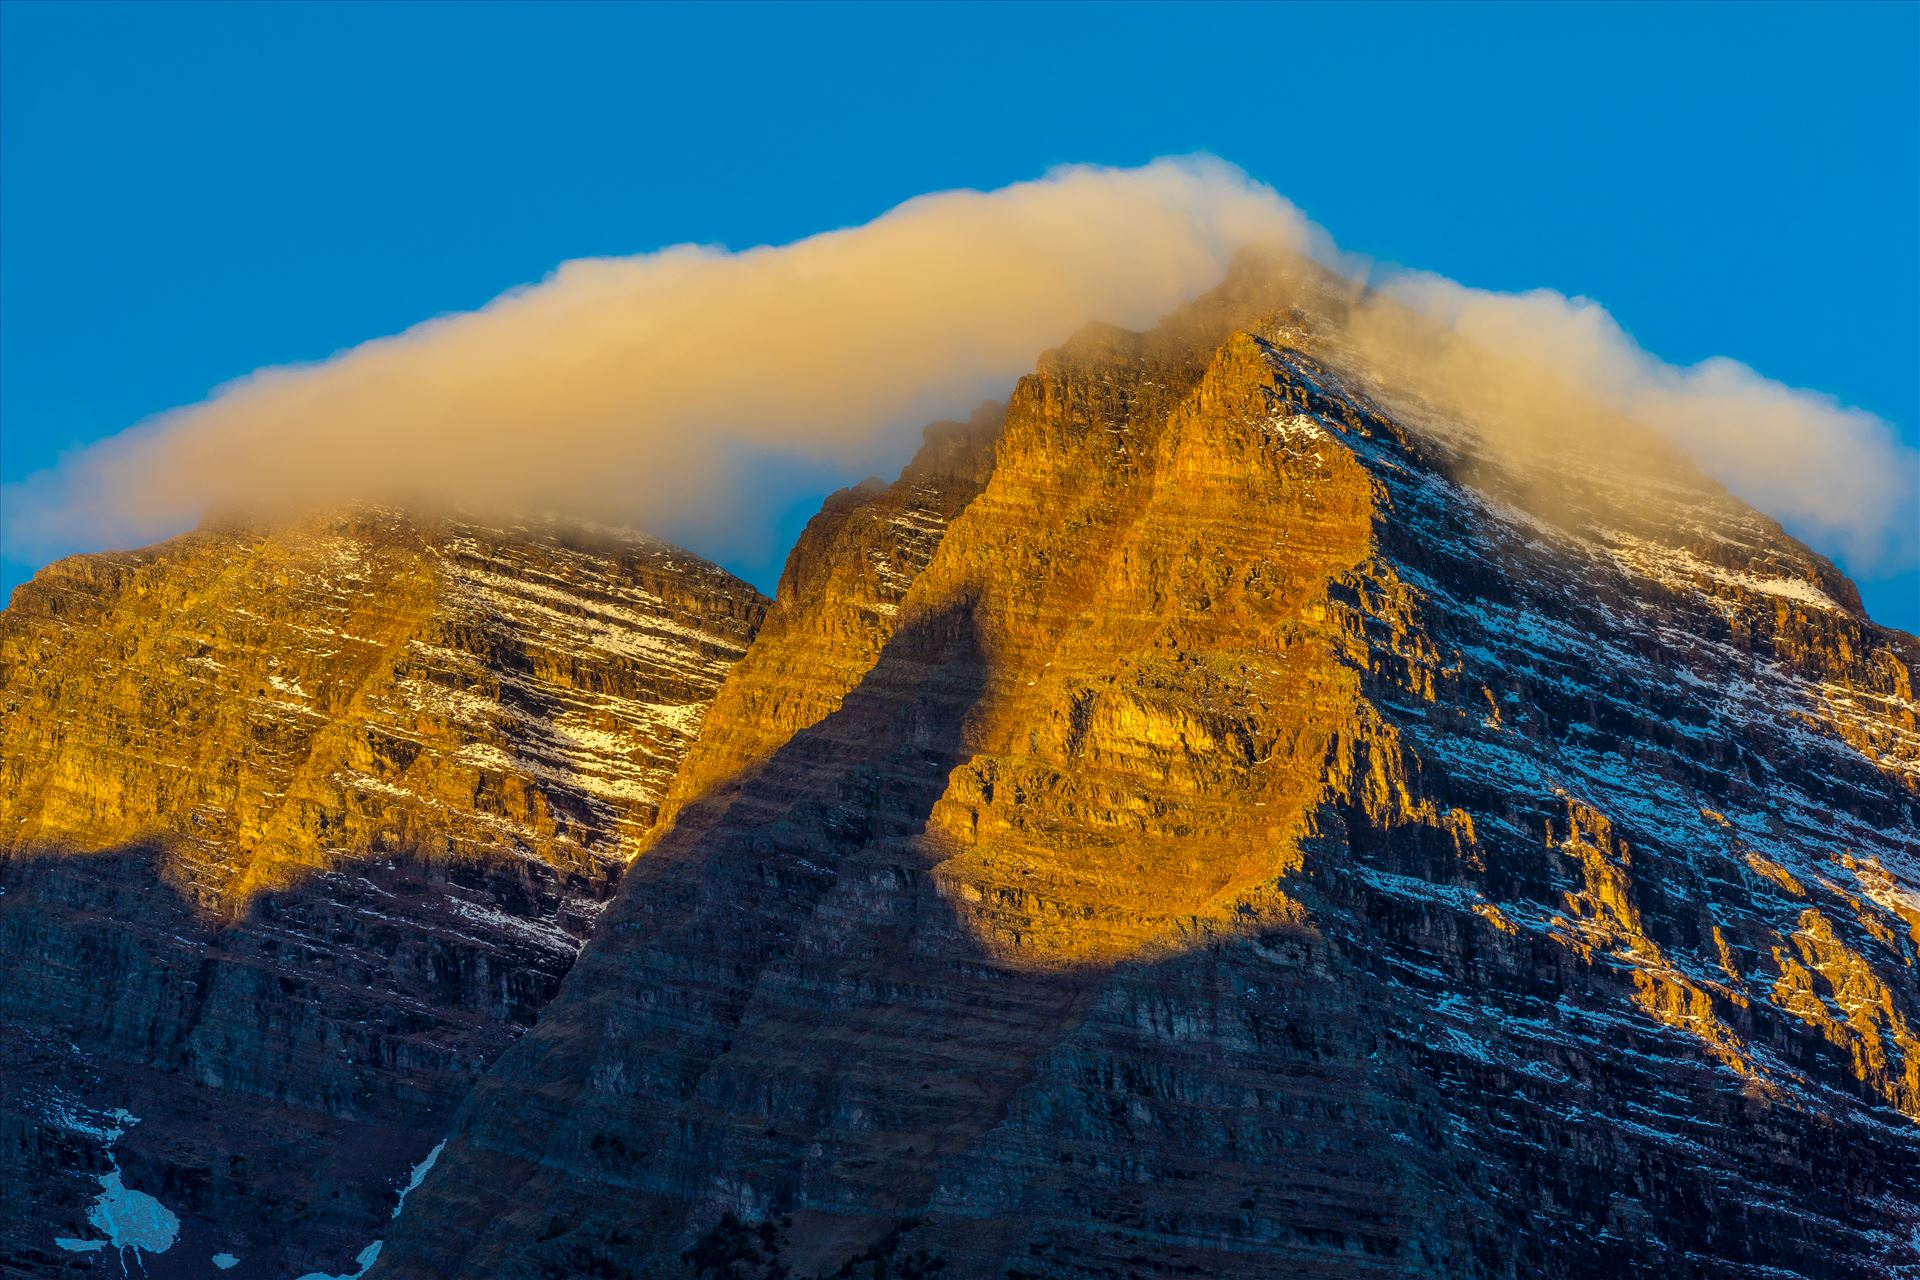 Maroon and Pyramiid Peaks Detail - Two stoic peaks rise above the Maroon Lake, waiting for the morning sun to reach out, as a low cloud slides over. by D Scott Smith